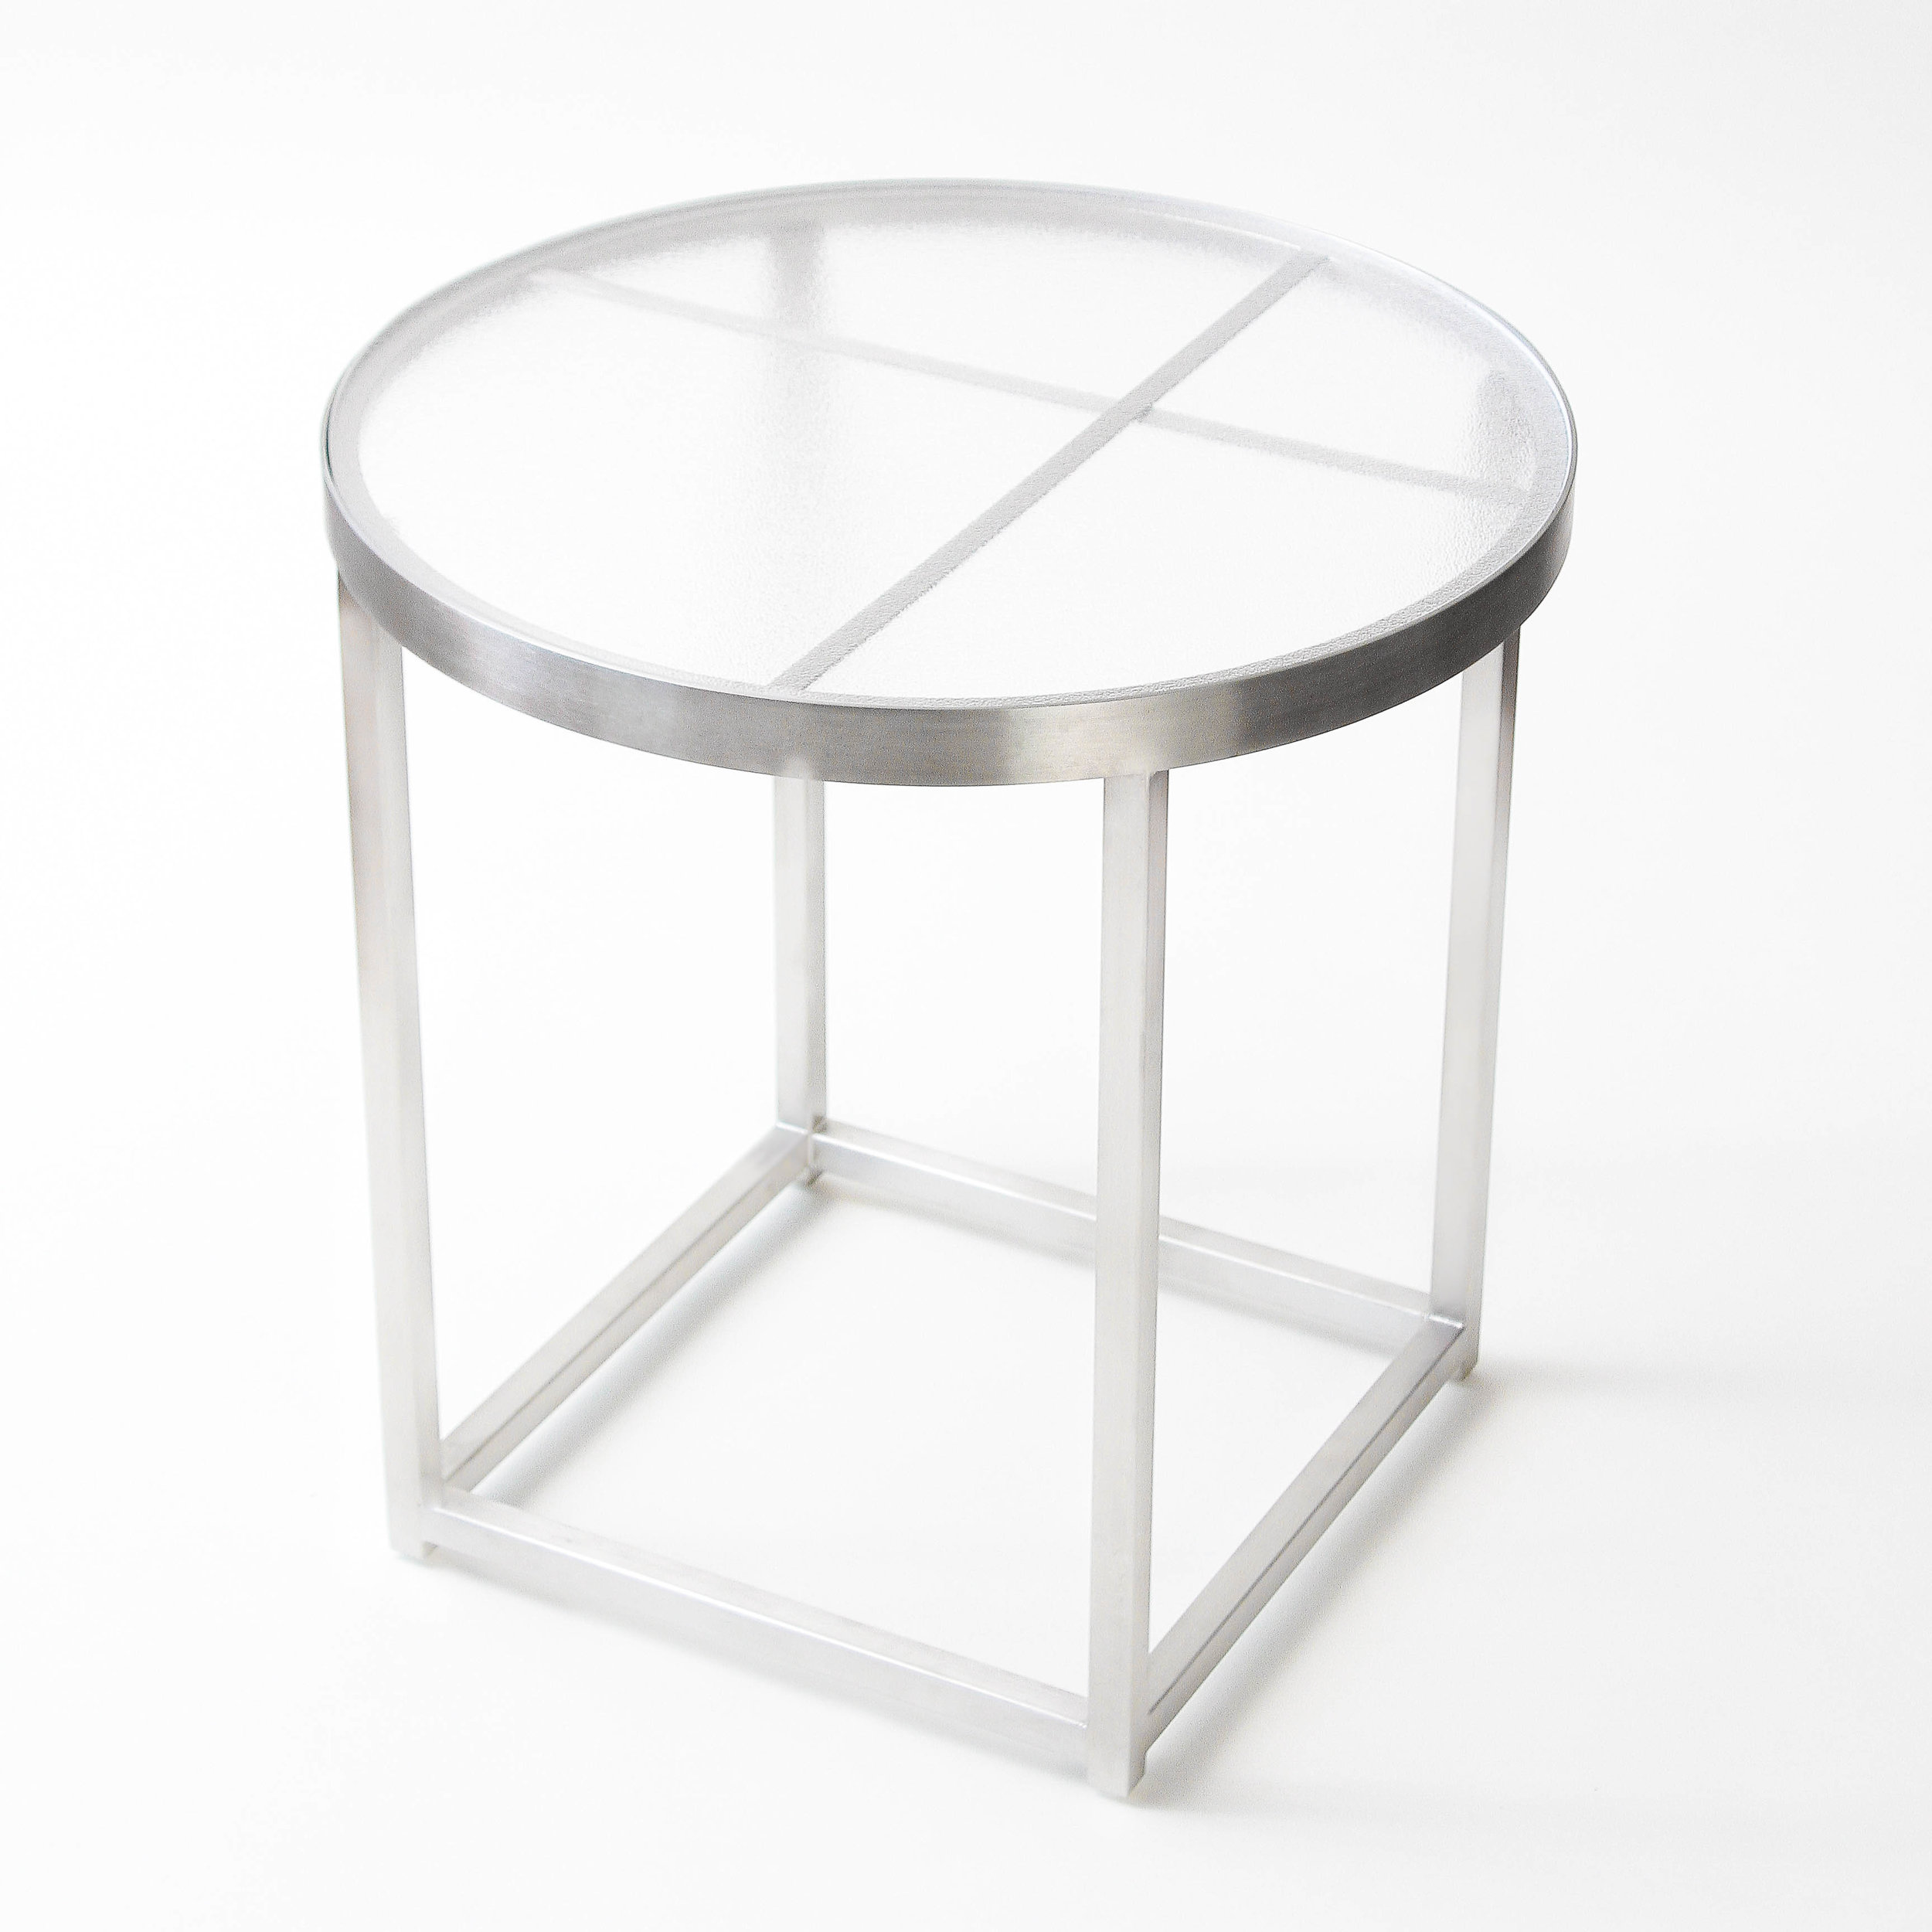 BOTANIC side table round BT 8353-LR.jpg